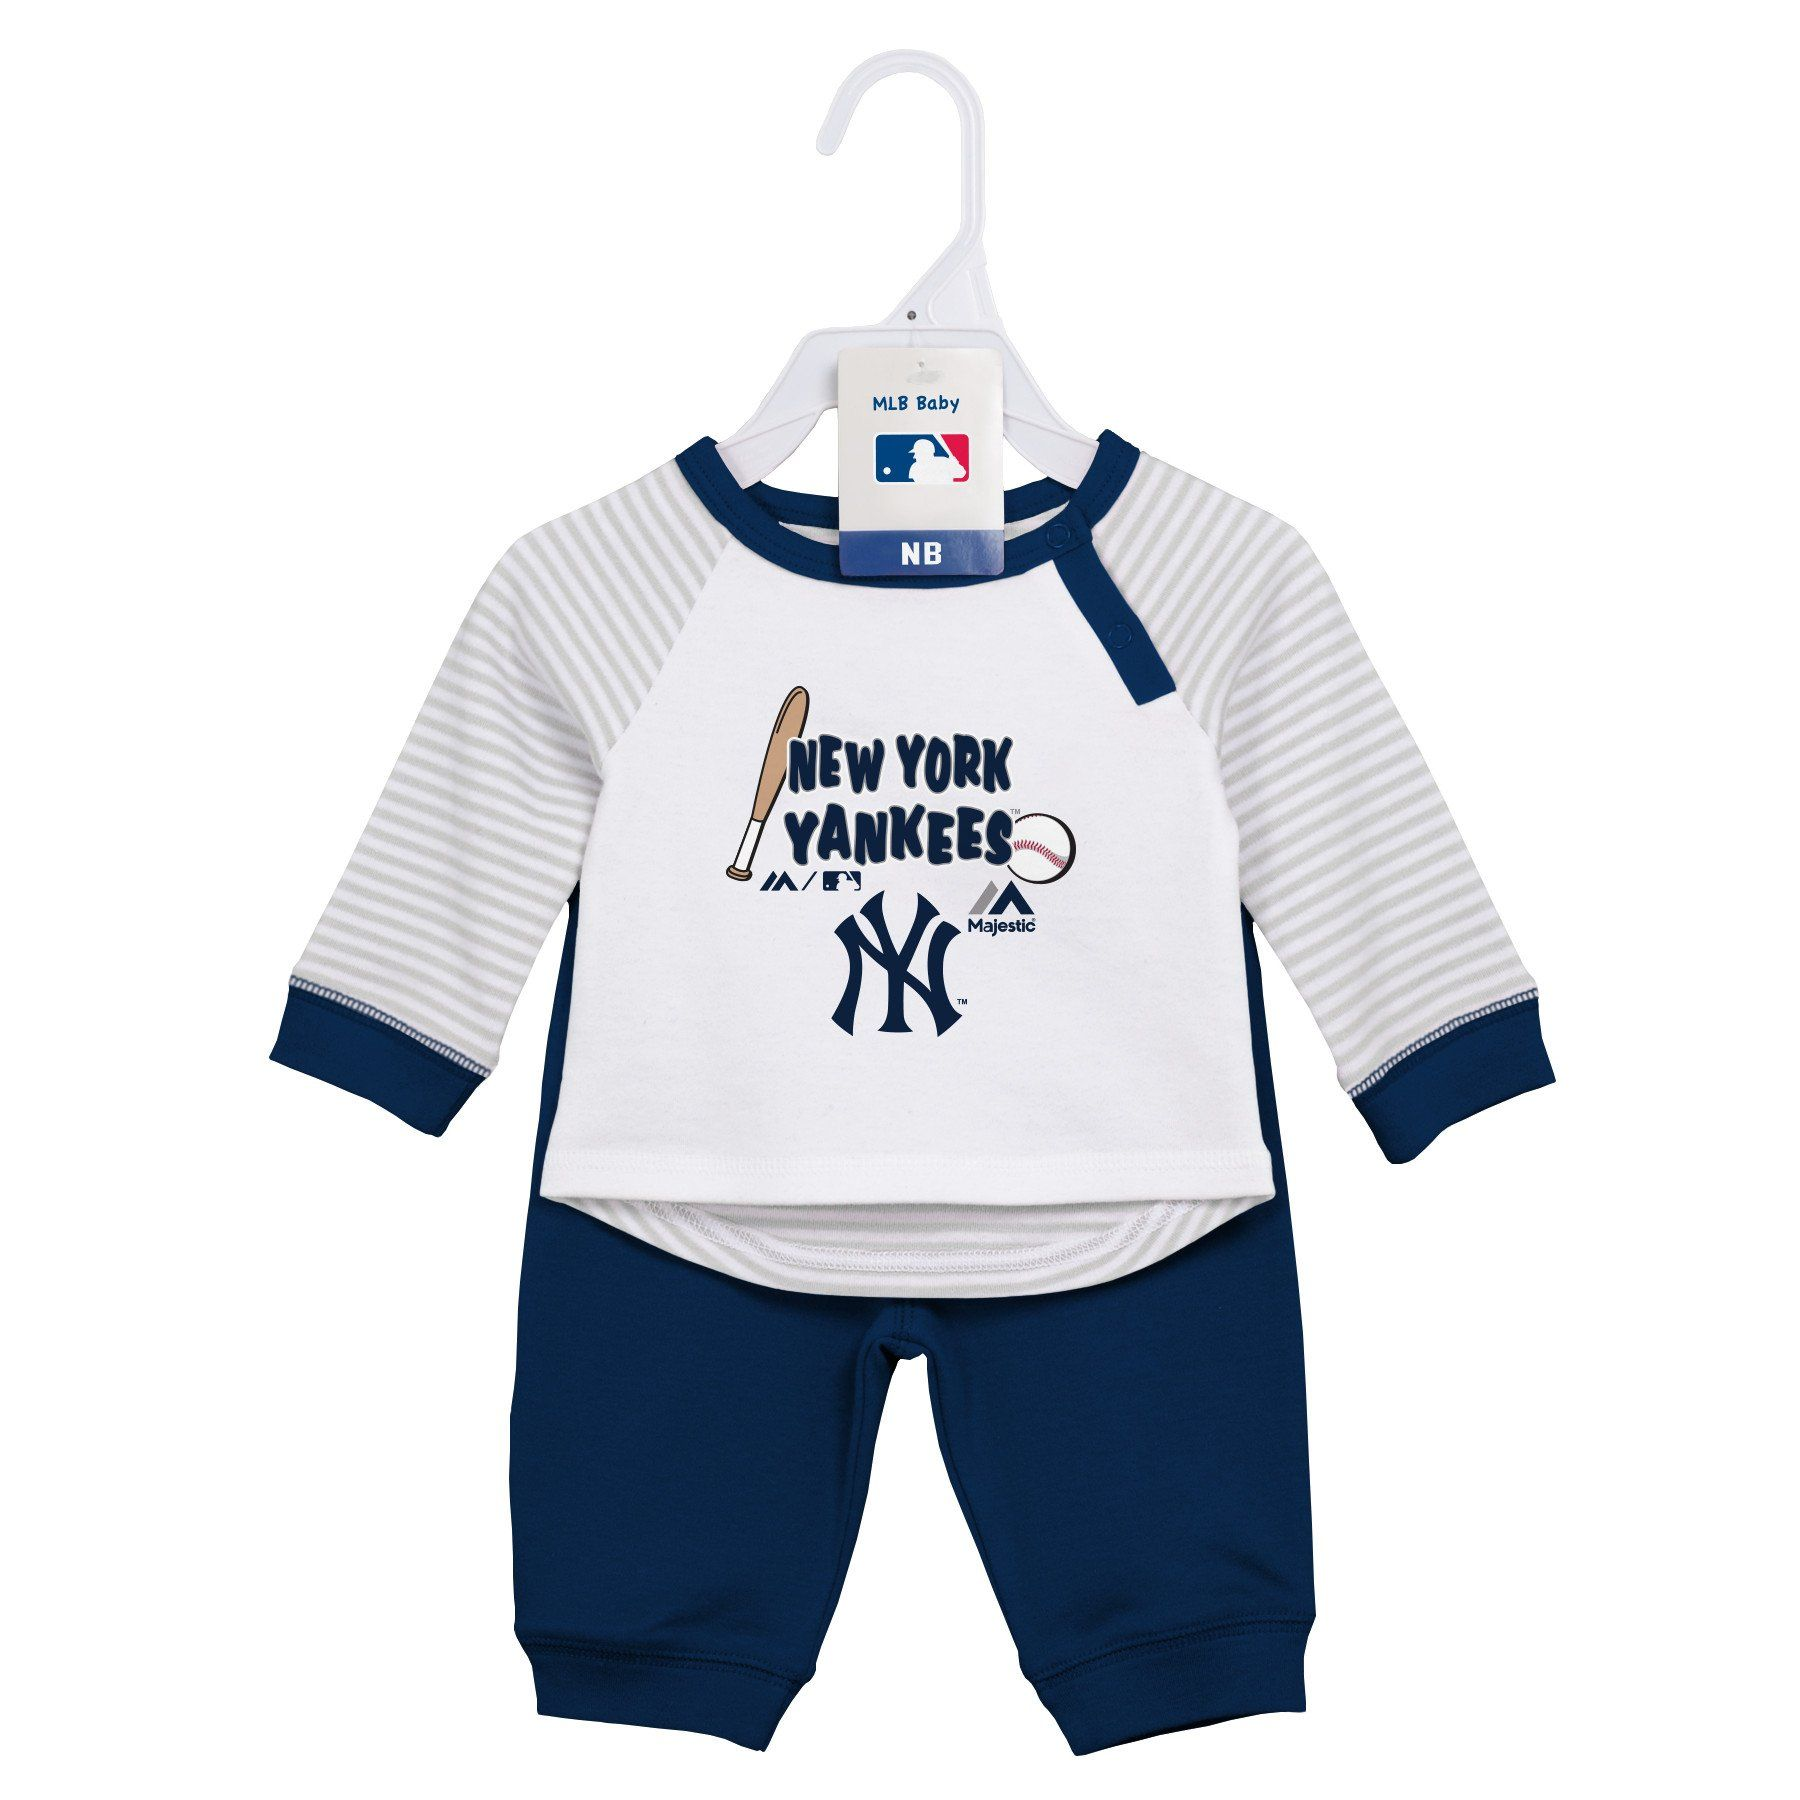 3e3ba5ca98ec8 New York Yankees Scrimmage 2 Piece Set Your Yankees fan will be ready to  watch the game or play a game in this cute 2 piece set.